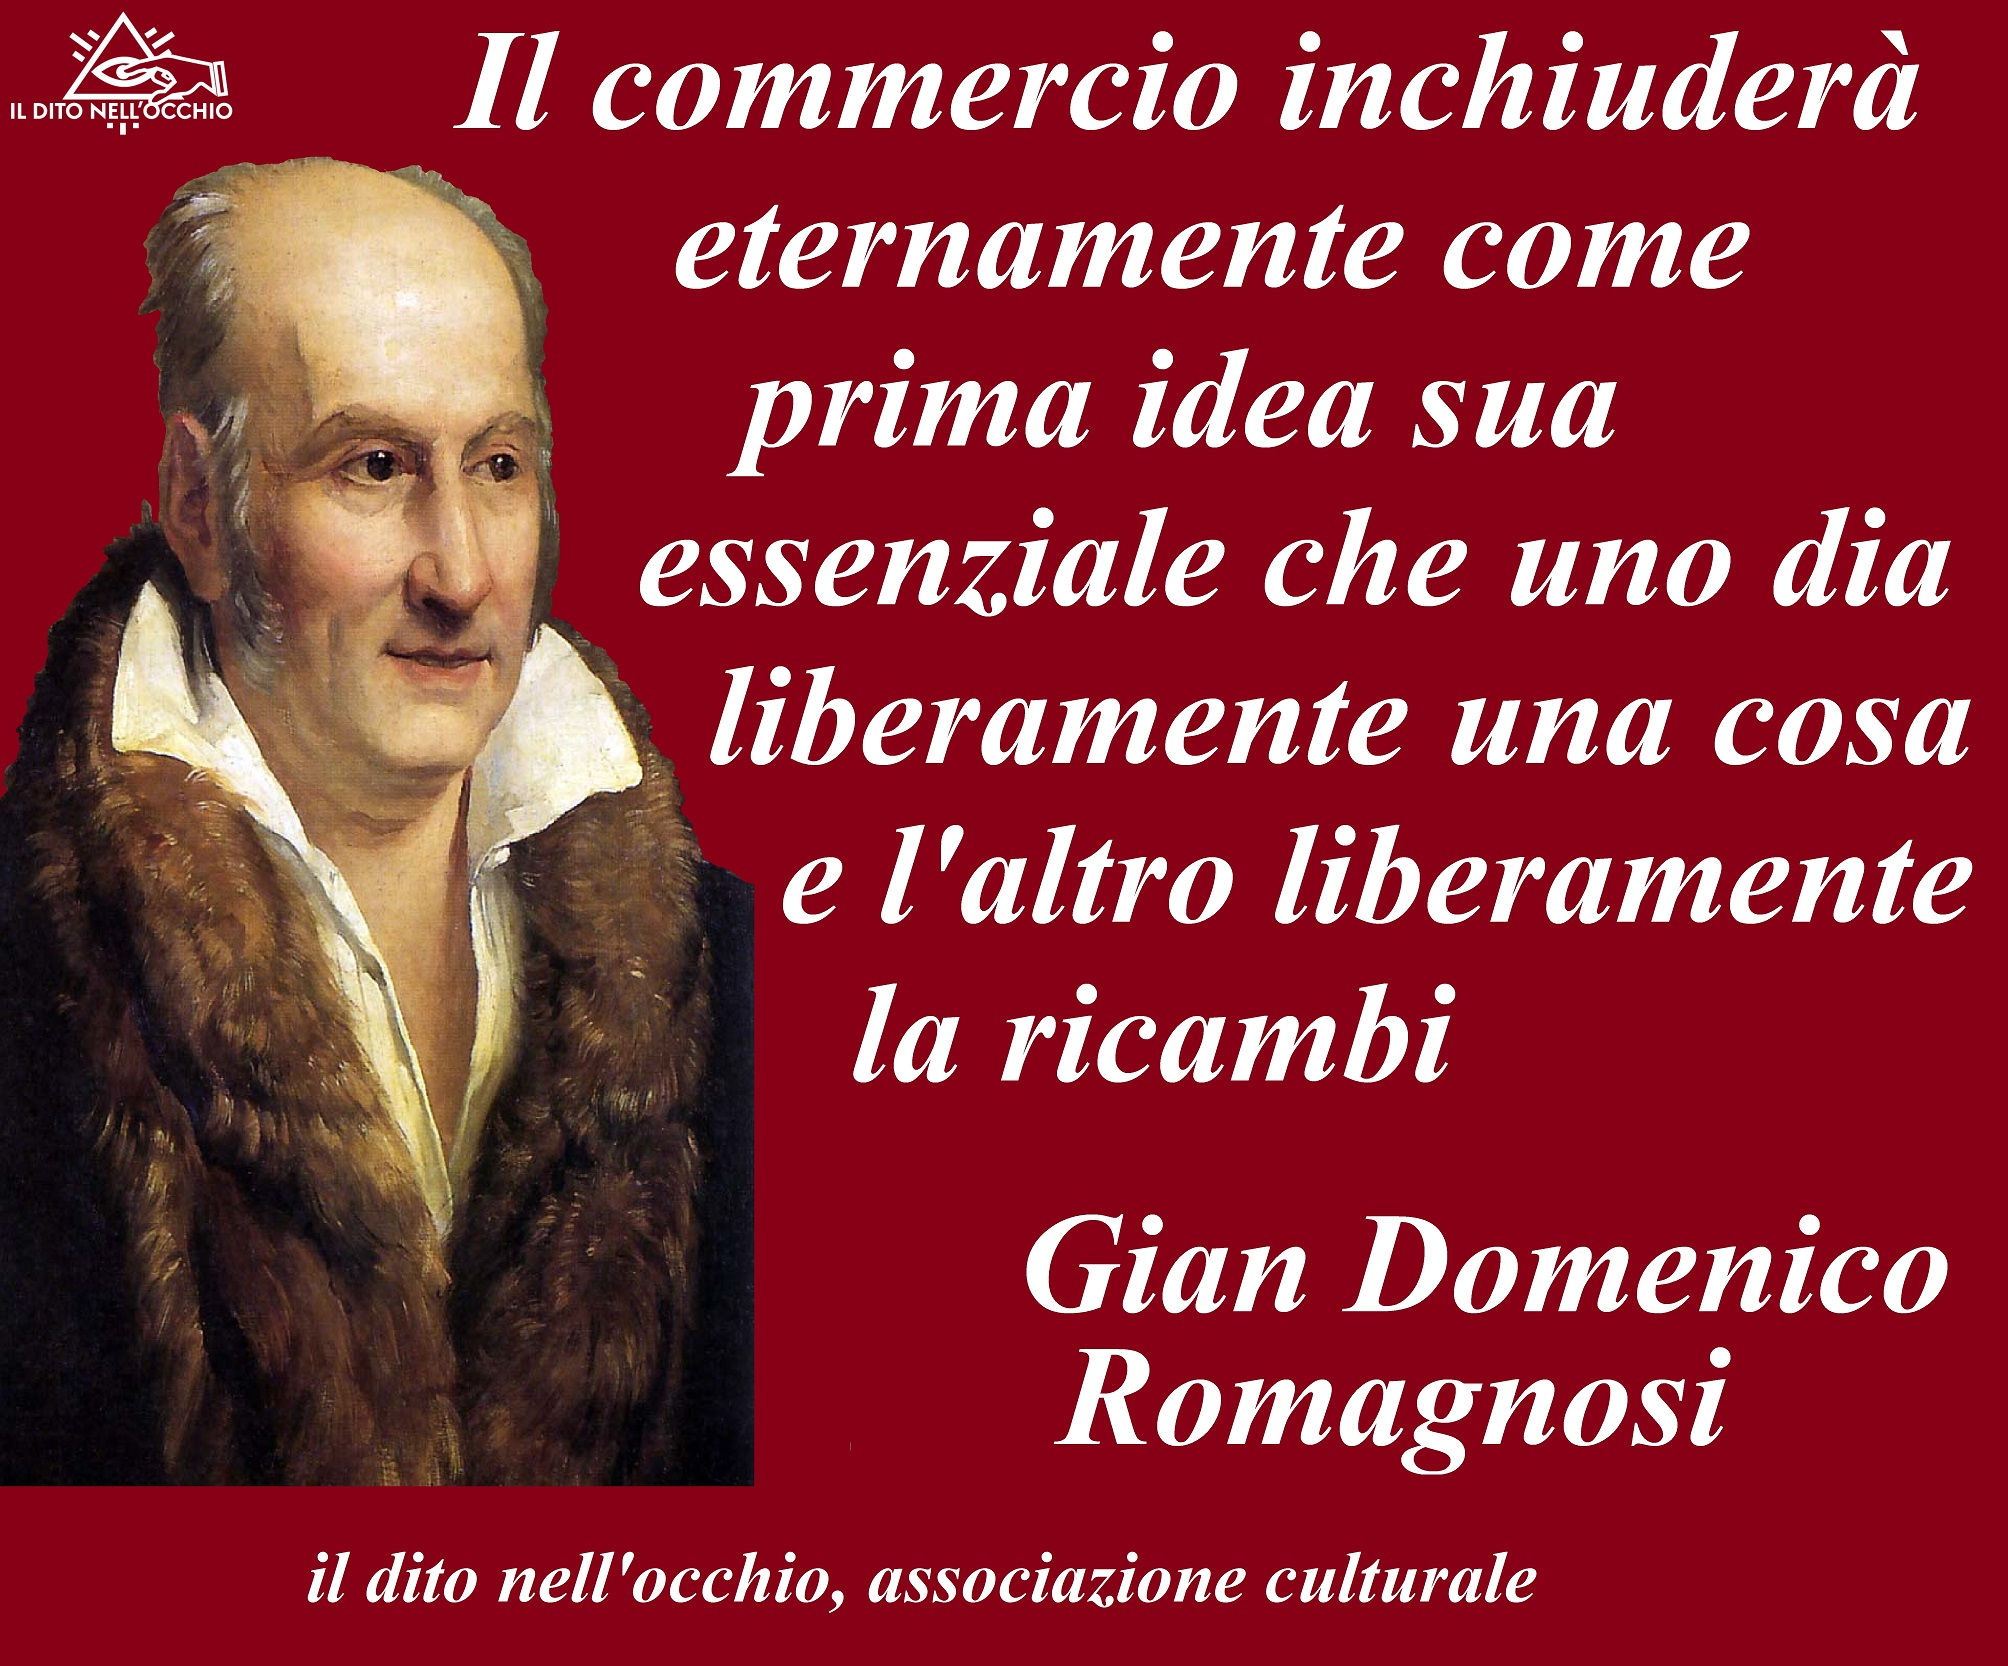 Gian Domenico Romagnosi